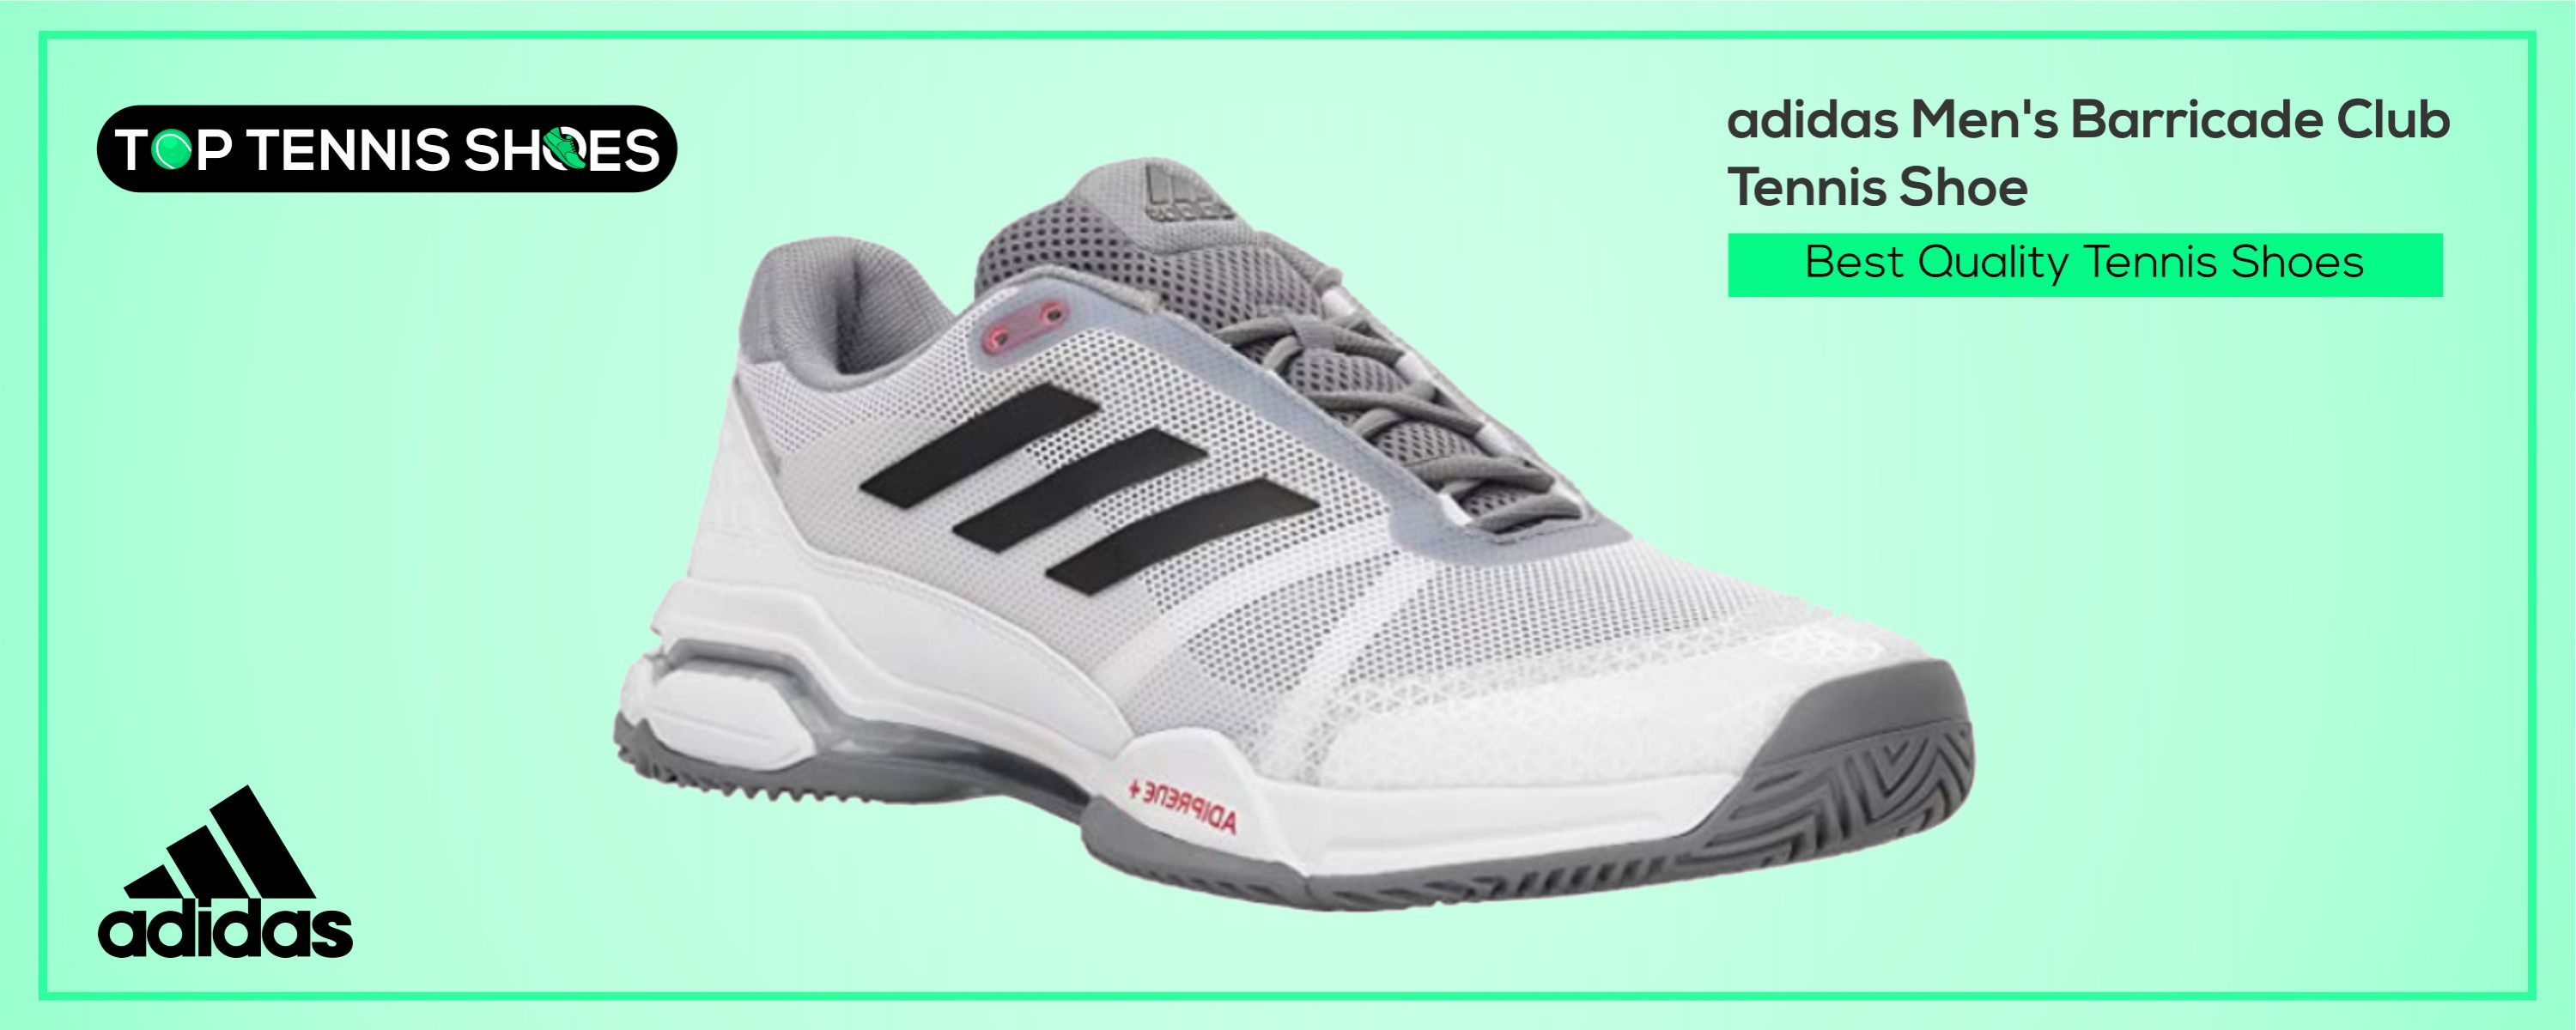 Best Quality Tennis Shoes